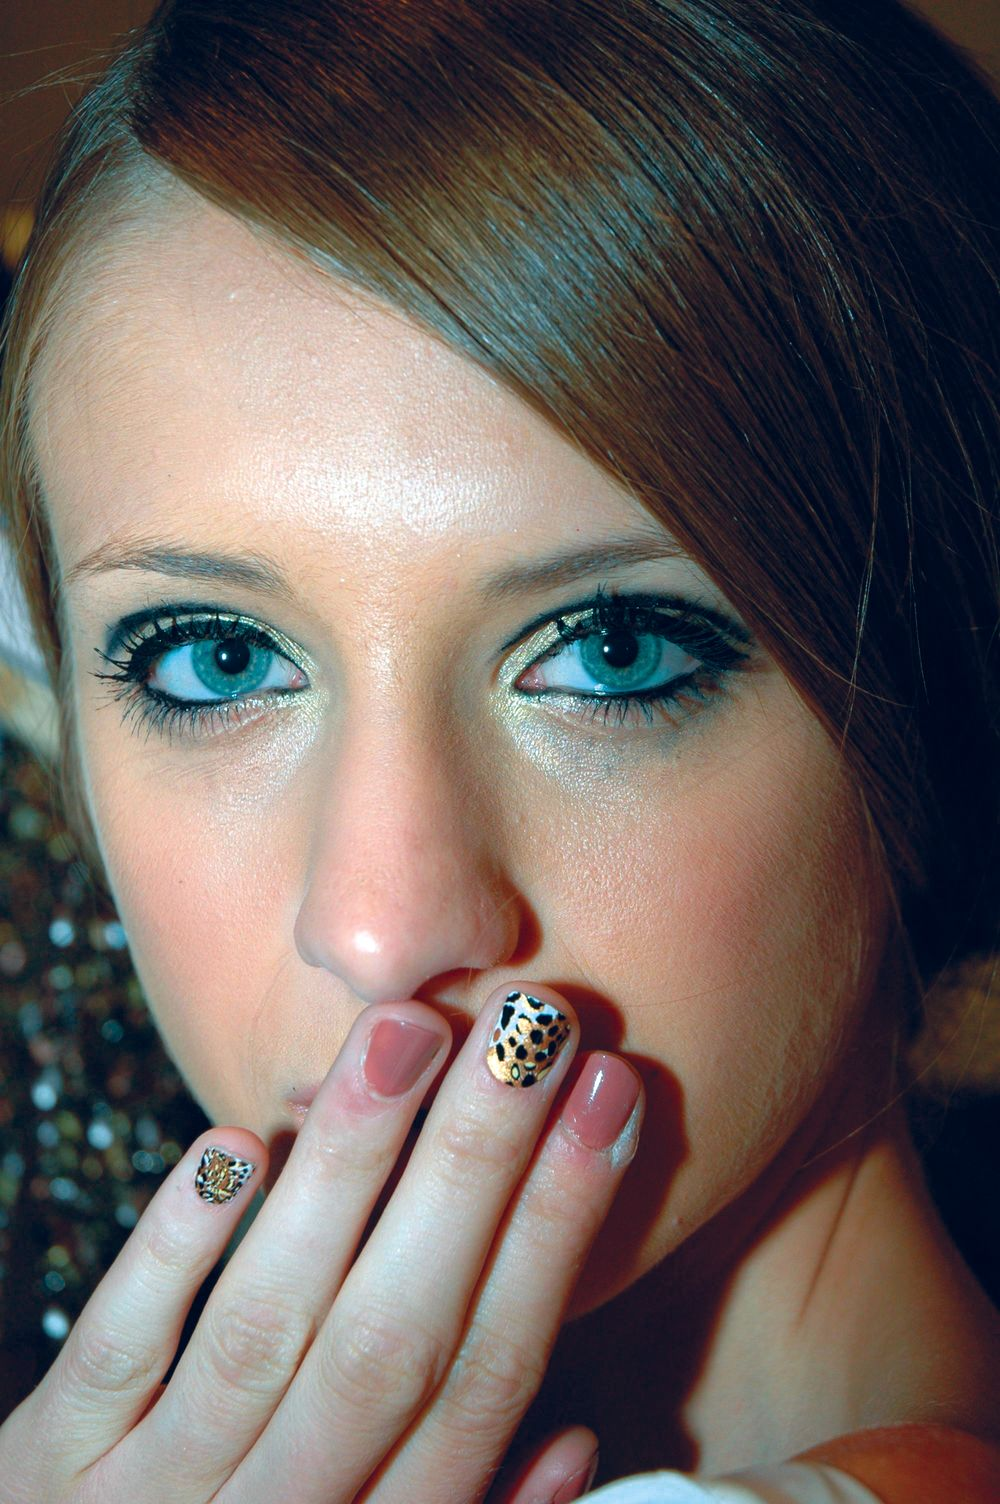 <p><strong>Dashing Diva</strong> debuted its new DesignFX nail designs at the Jad Ghandour safari-themed show.&nbsp;The designer fell in love with the fierce Cheetah/Tiger print, Feline Menagerie. The models sported DesignFX and Flatiron District polish while the men wore DesignFX on their pinky fingers.</p>